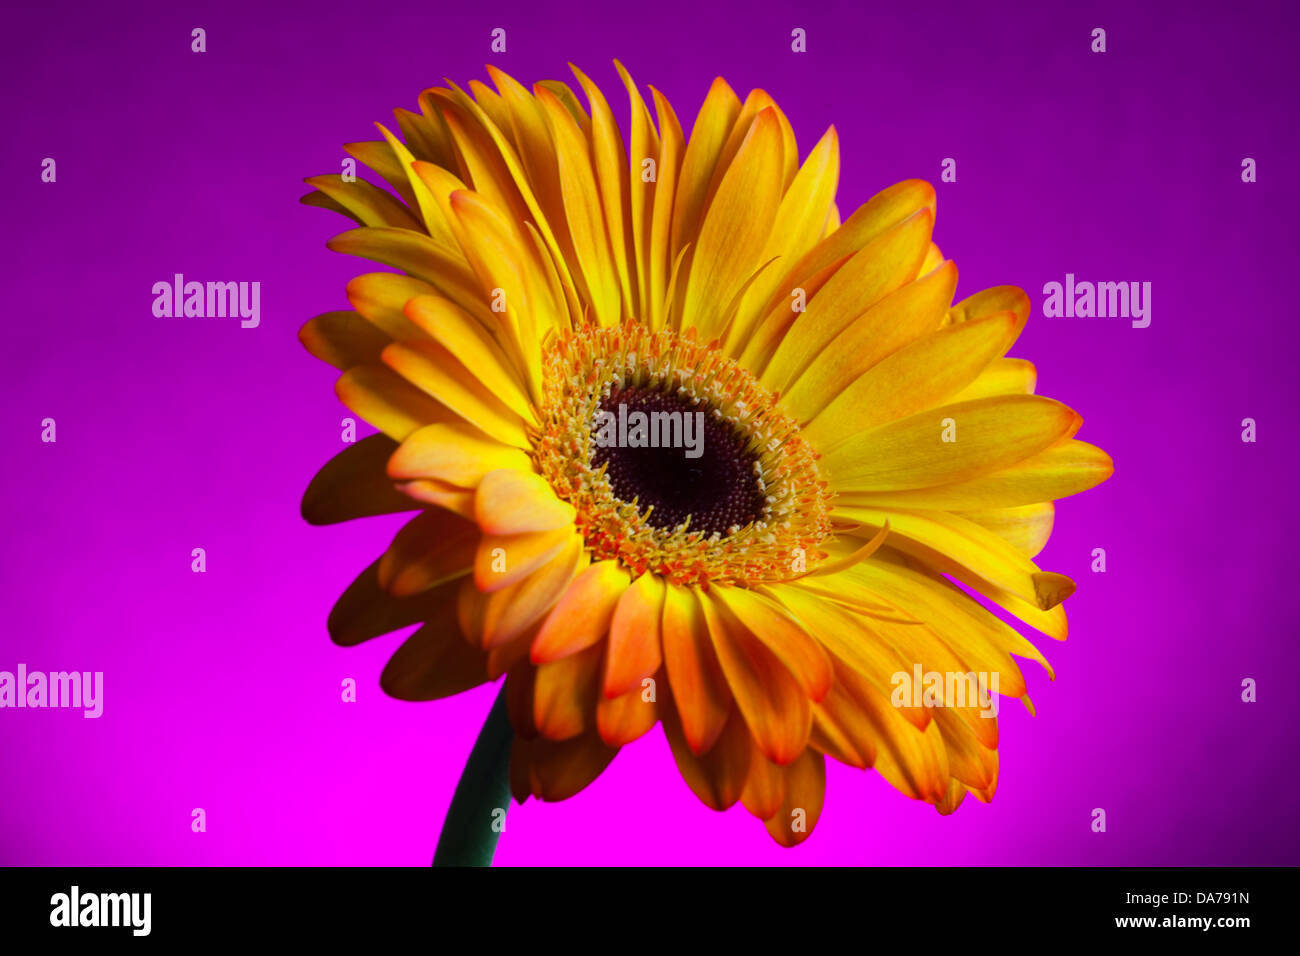 Still life image of a Gerbera flower on a coloured background with full and selective focus - Stock Image